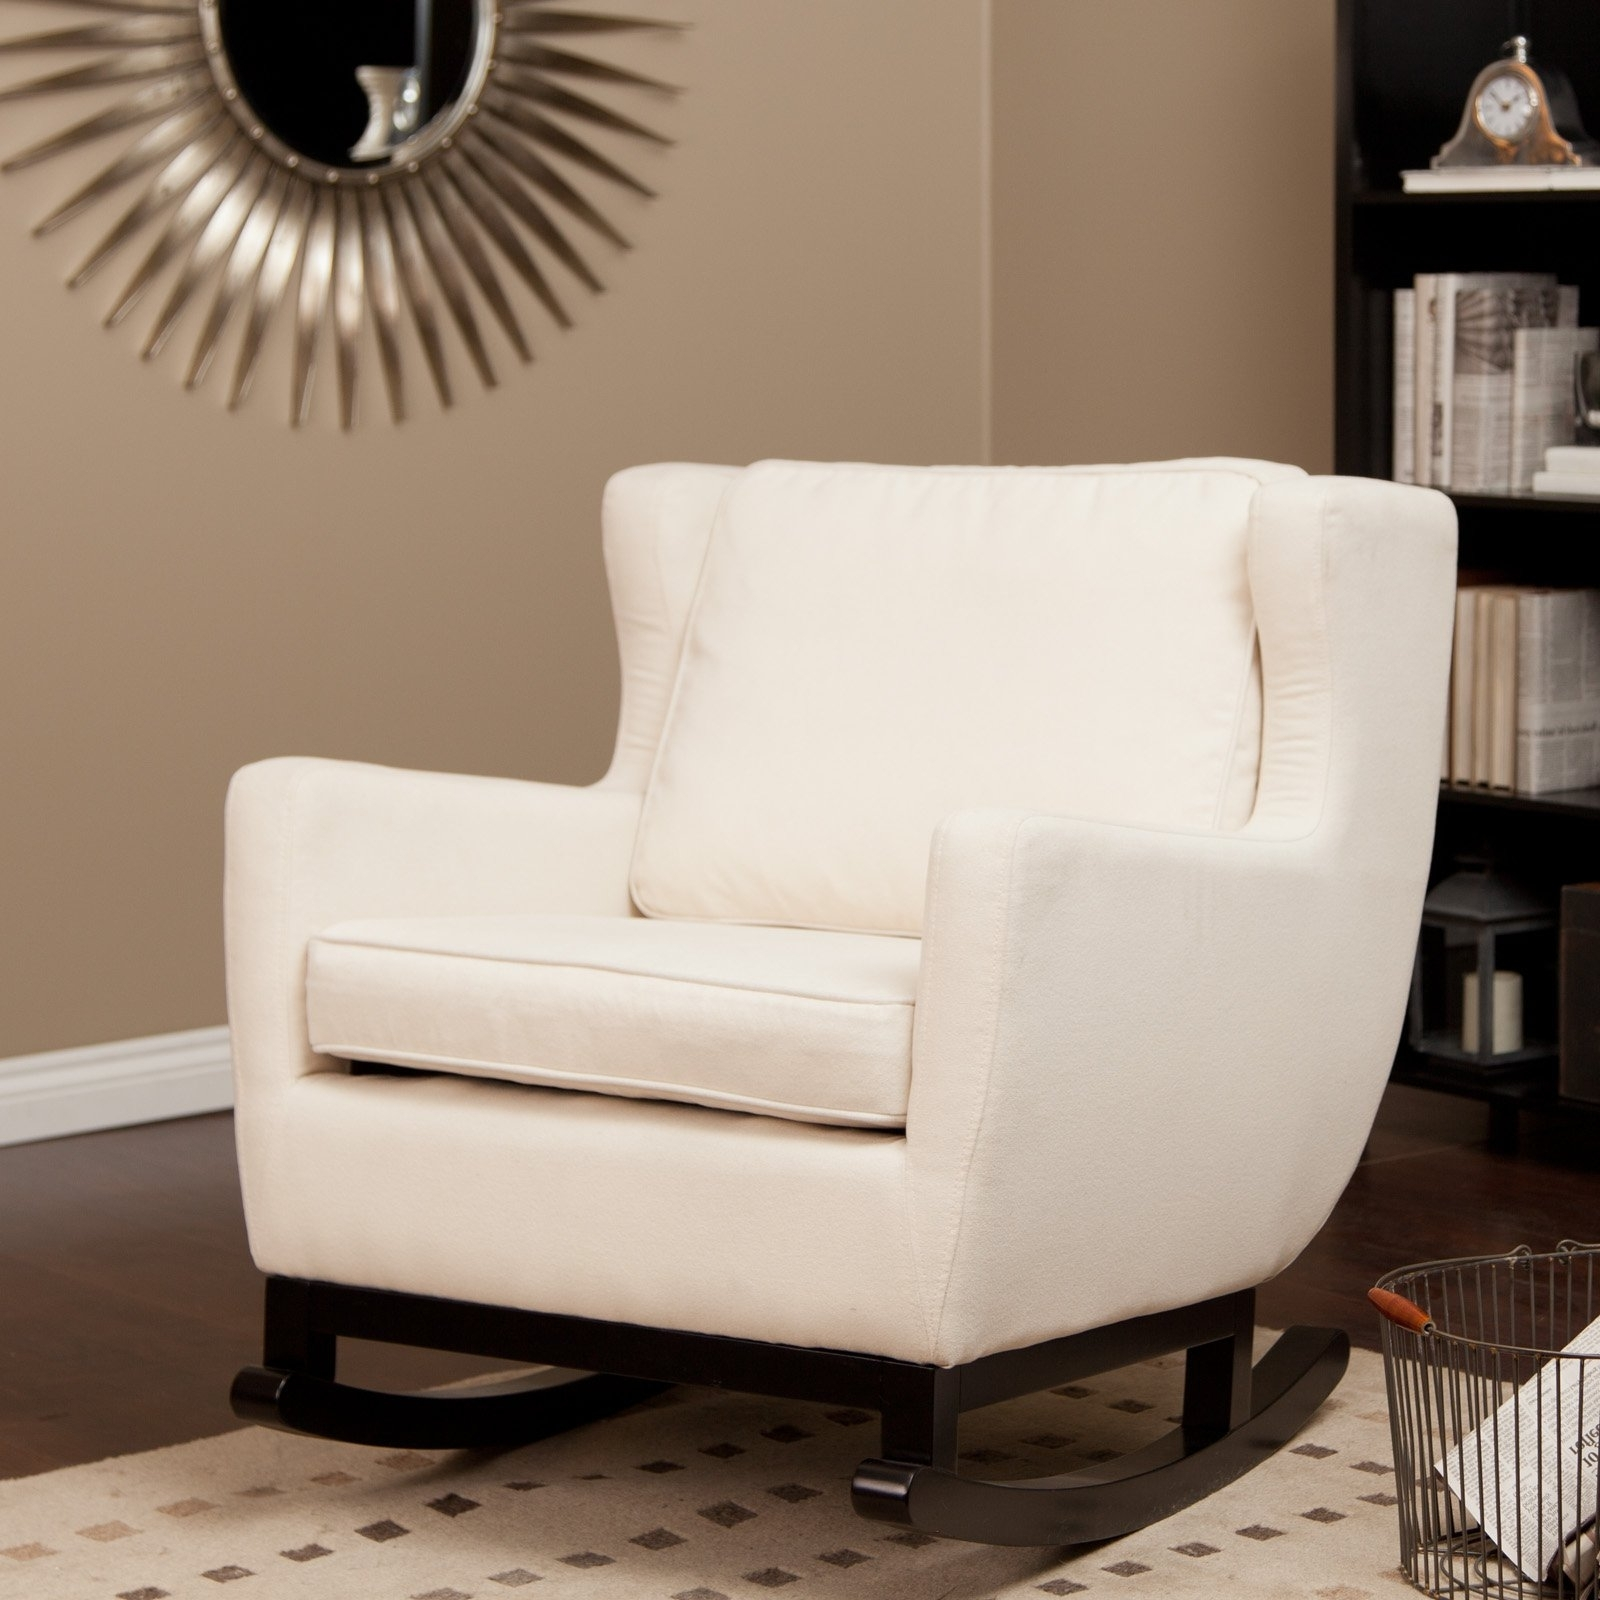 Livingroom : Winsome Rocking Chair At Modern Interior Chairs With Widely Used Rocking Chairs For Living Room (View 13 of 20)